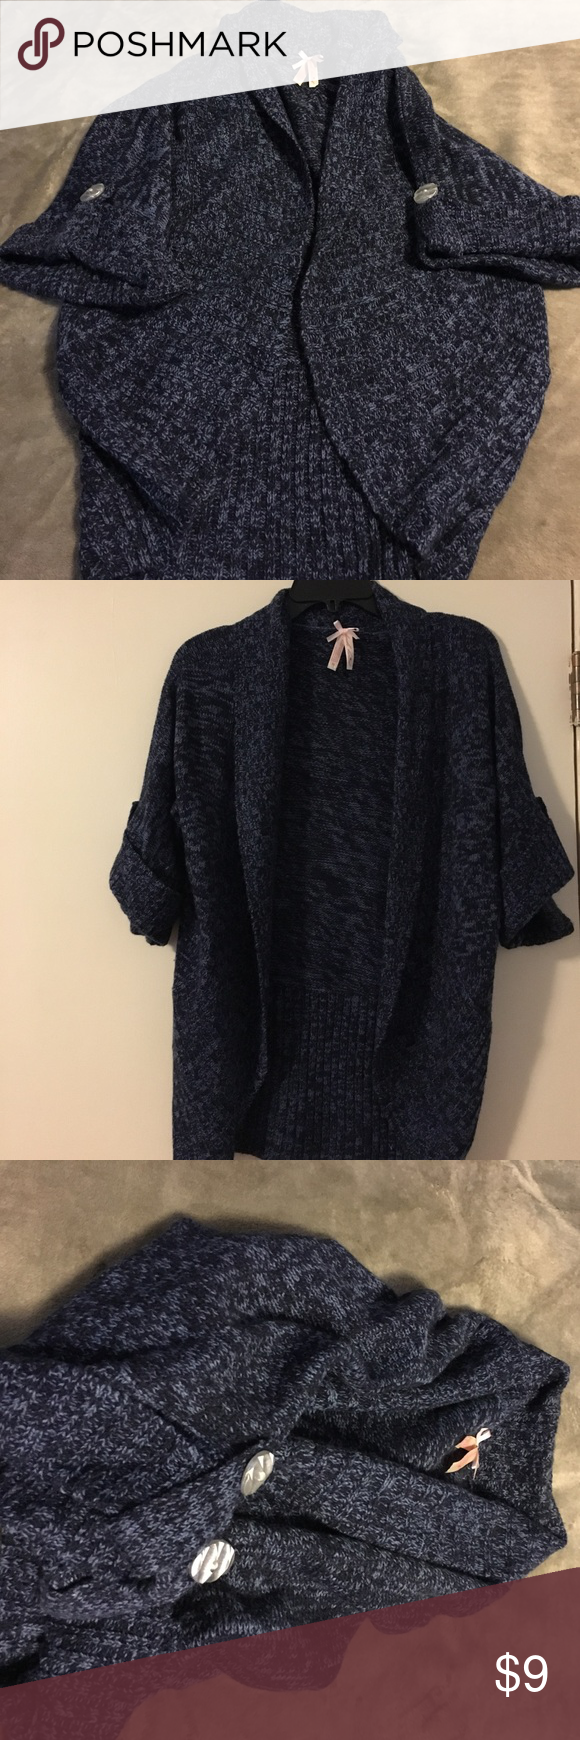 Blue shrug sweater Like new, size large shrug. Color is navy and a ...